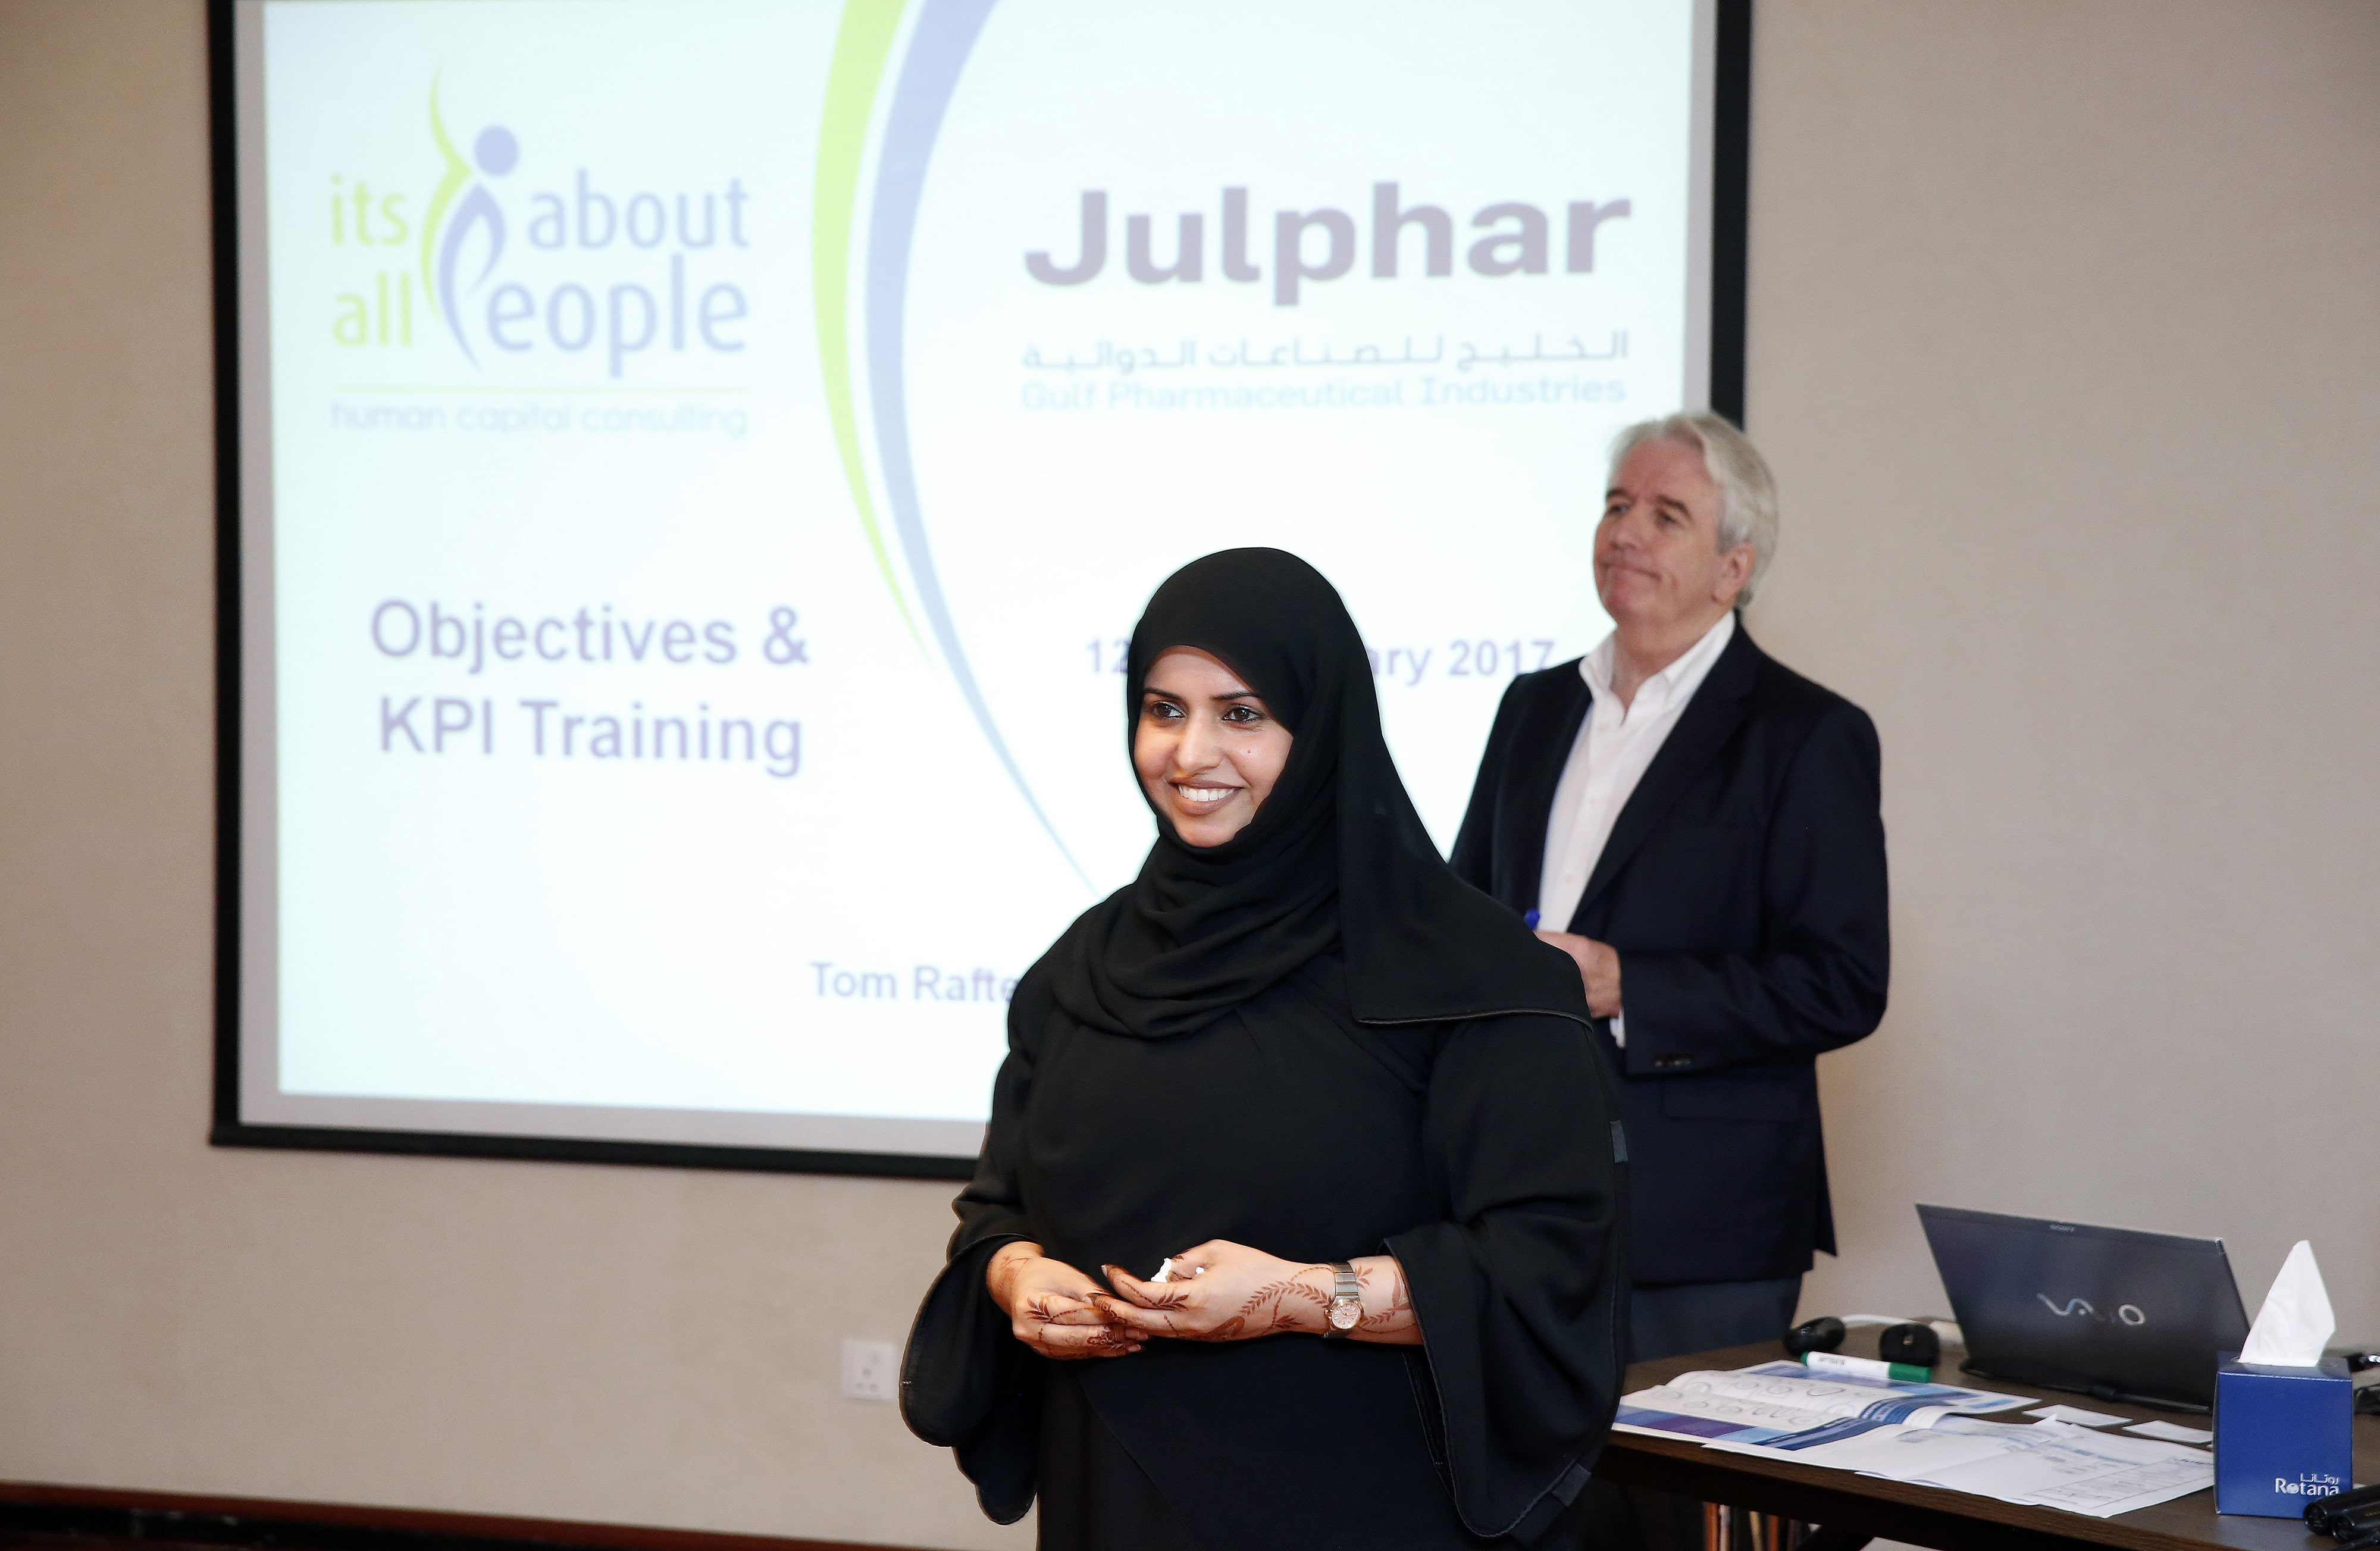 Julphar hosts successful workshop for its employees on Performance Management